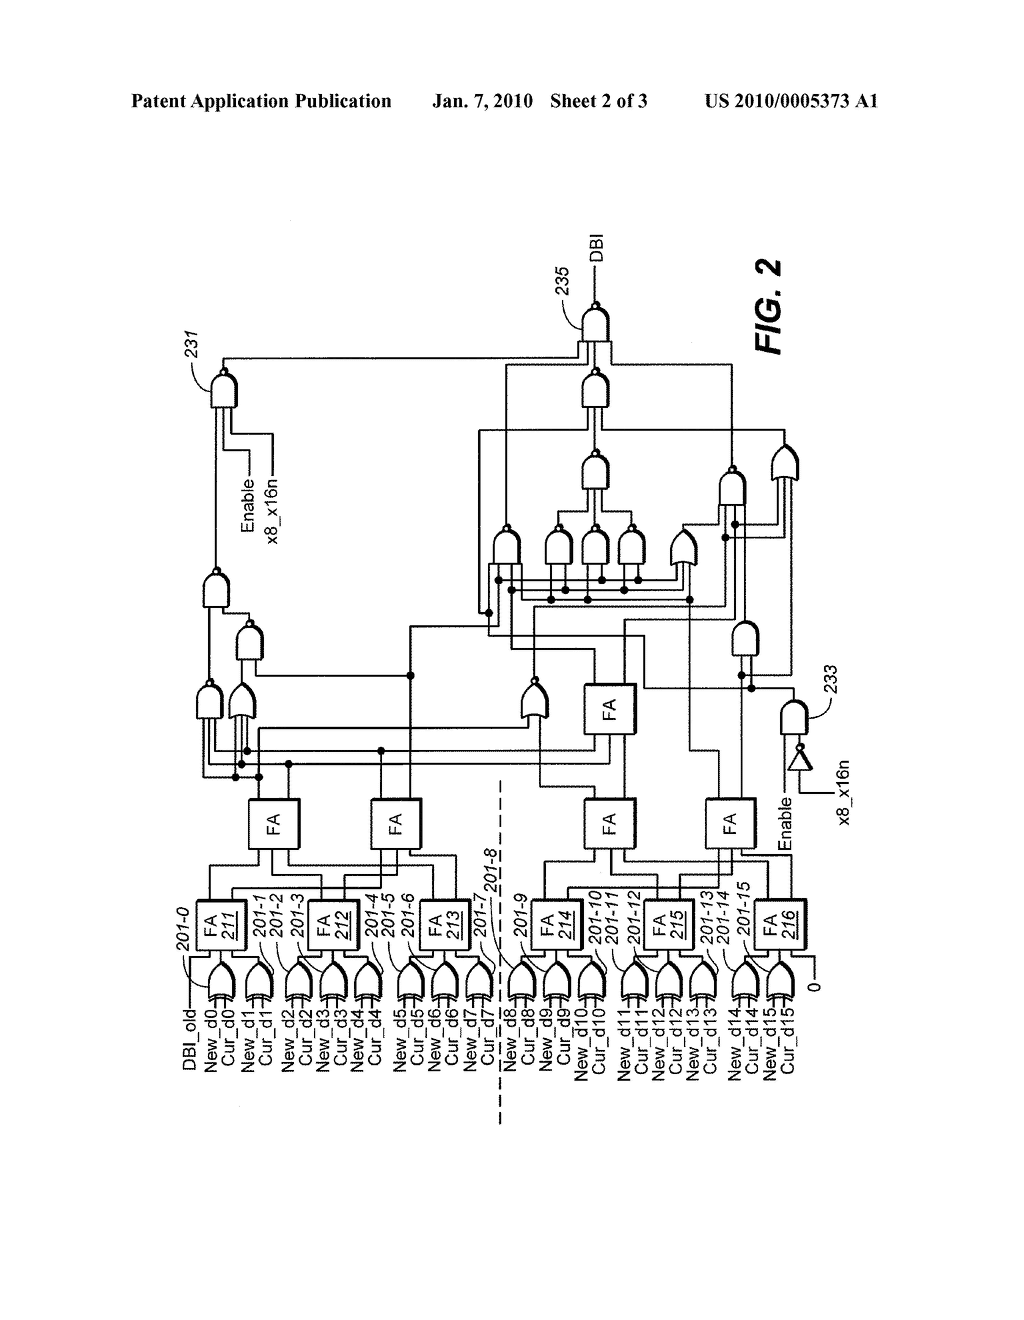 Majority Voting Logic Circuit For Dual Bus Width Diagram Symbols Schematic And Image 03